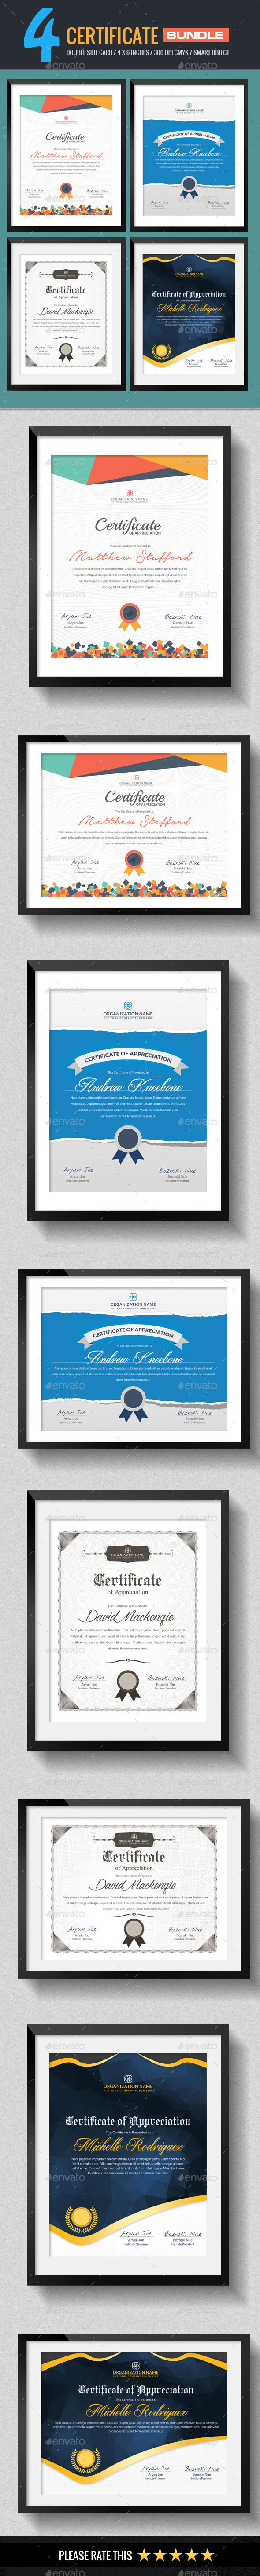 4 In 1 Multipurpose Certificates Bundle - Certificates Stationery